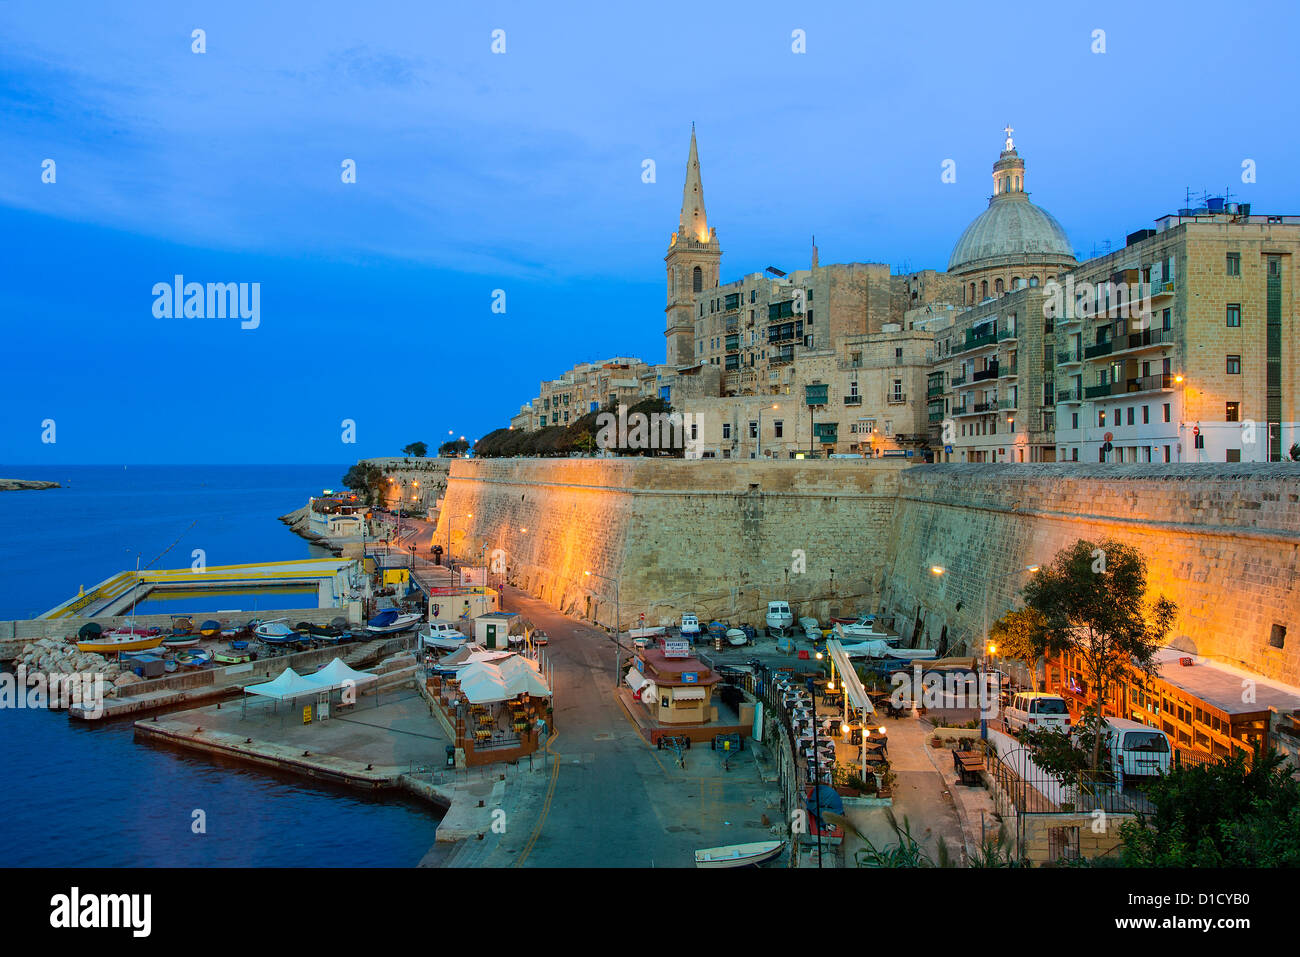 Malta, Valletta, skyline with St. Paul's Anglican Cathedral and Carmelite Church - Stock Image